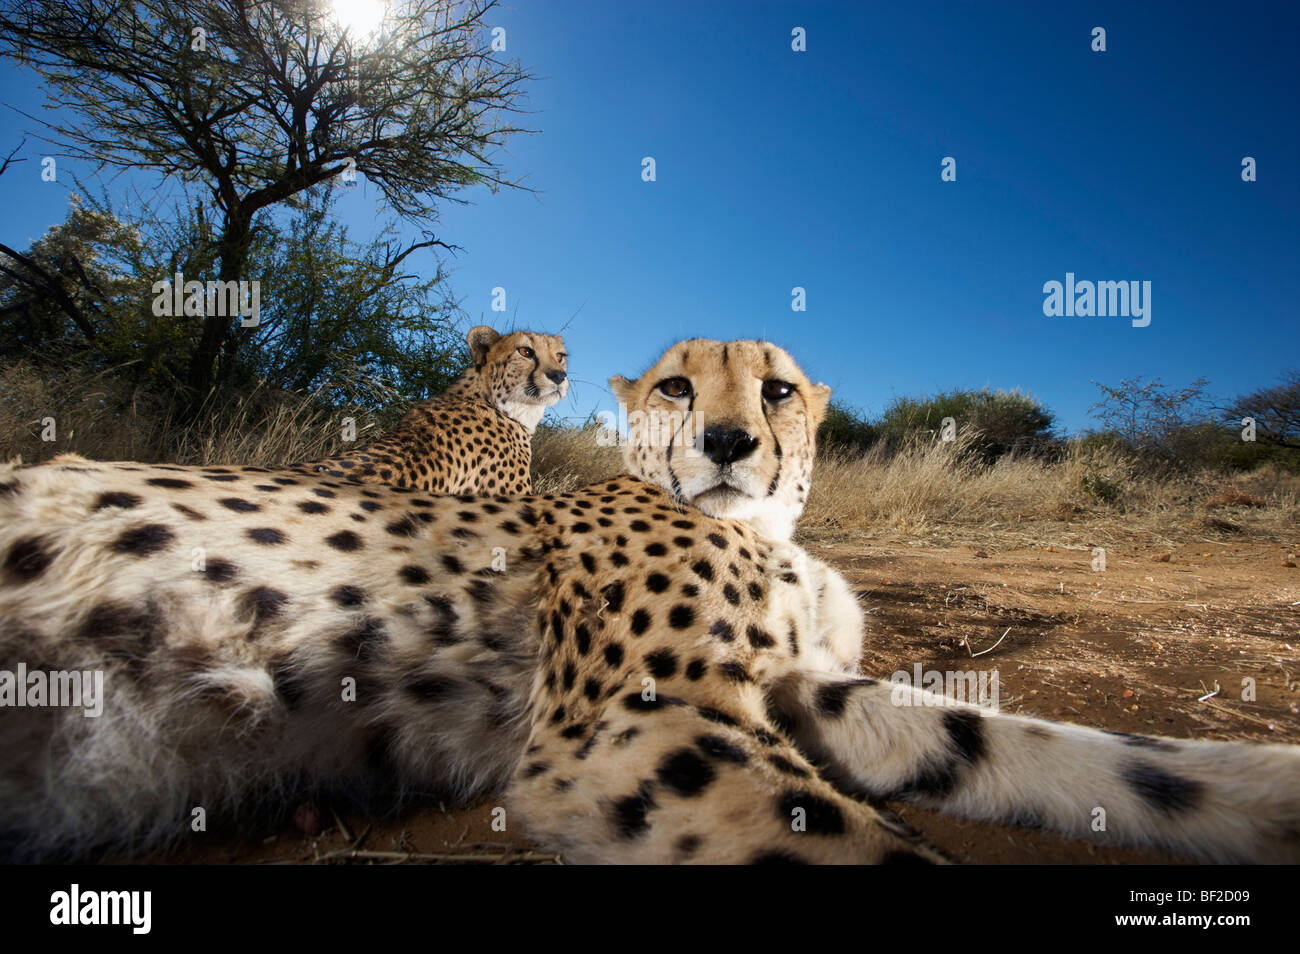 Close up of cheetah (Acinonyx jubatus) looking at camera, Na'an ku se Wild Life Sanctuary, Namibia. - Stock Image